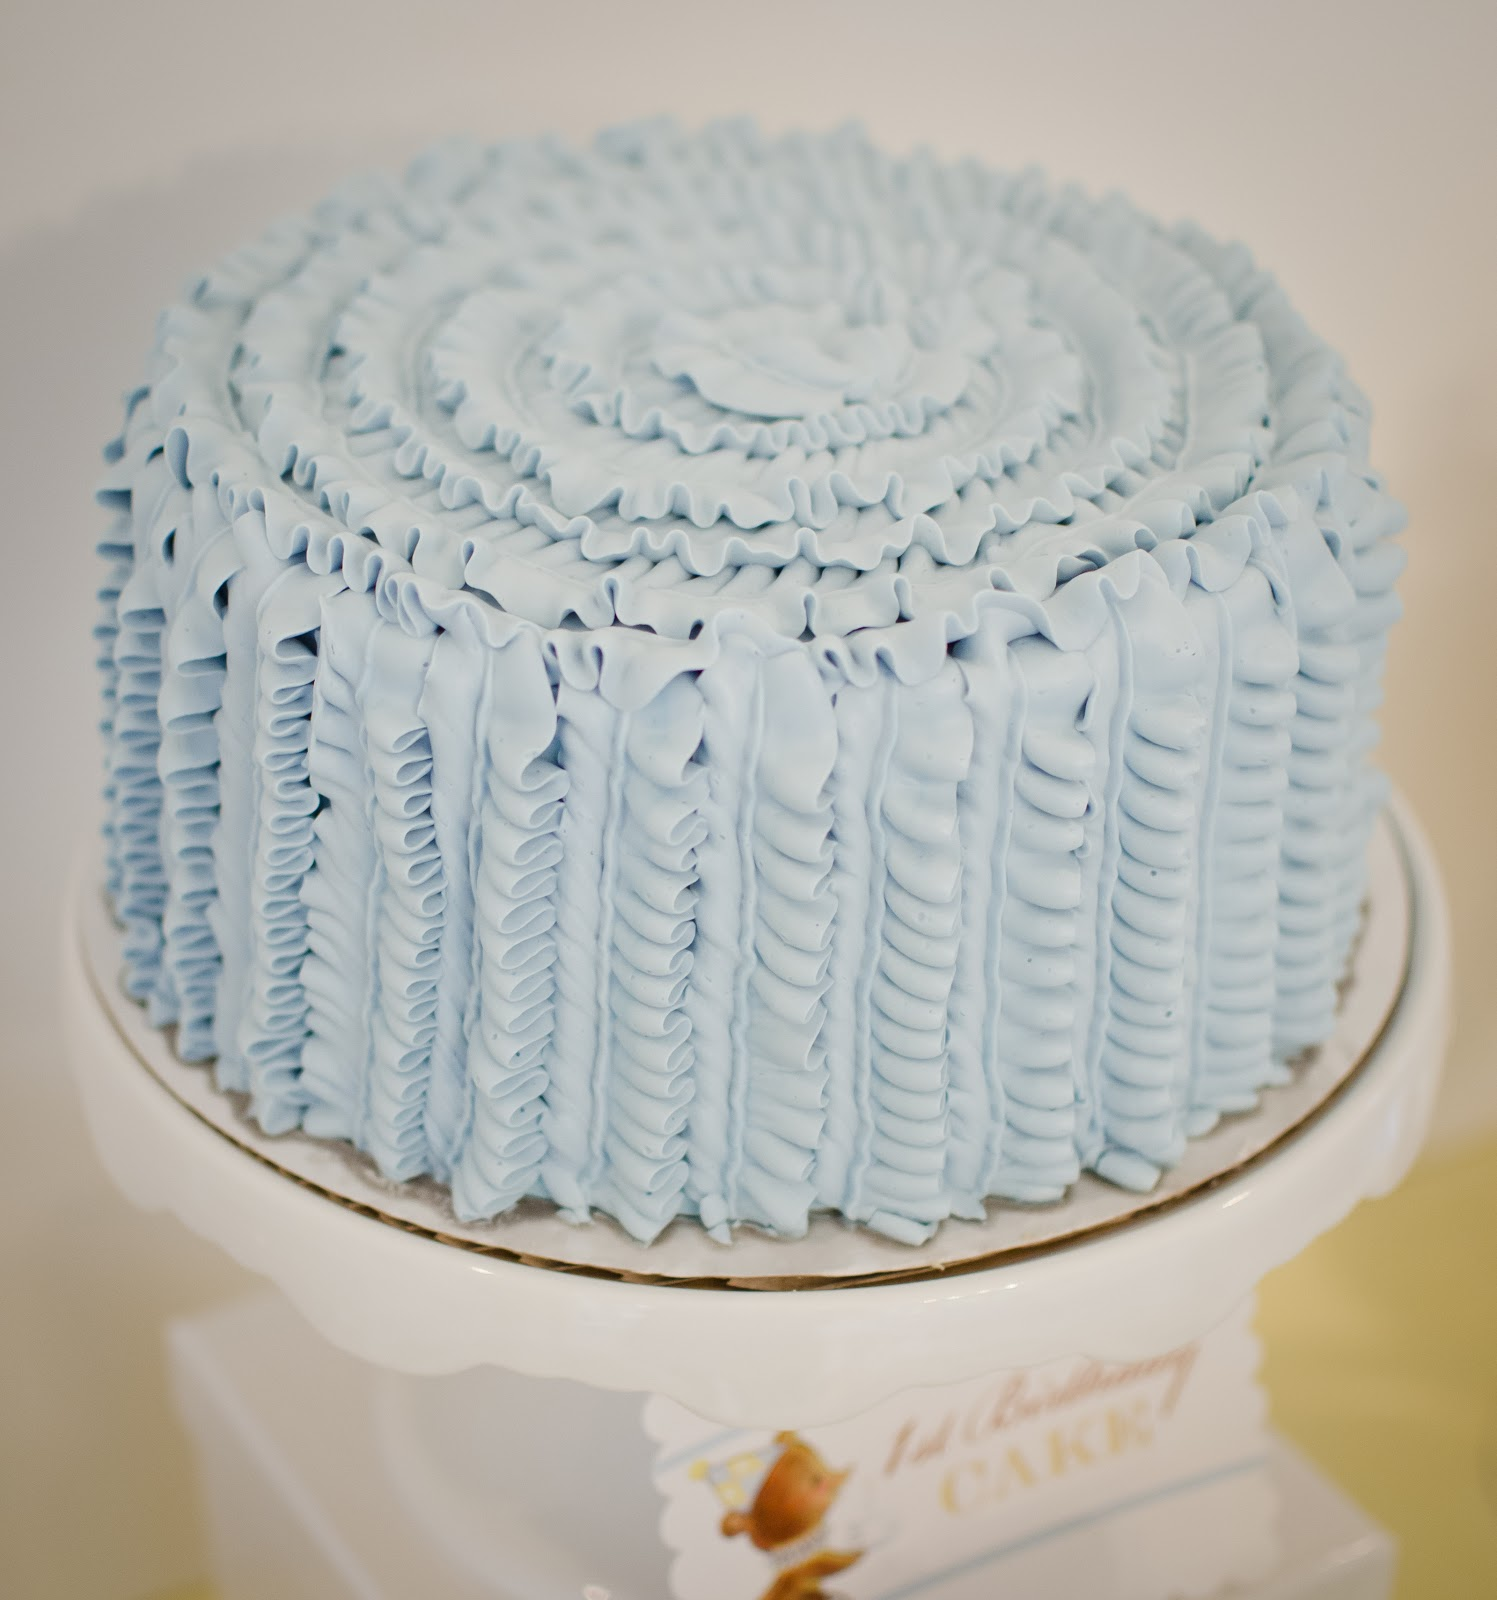 How To Make Vertical Ruffles On A Cake